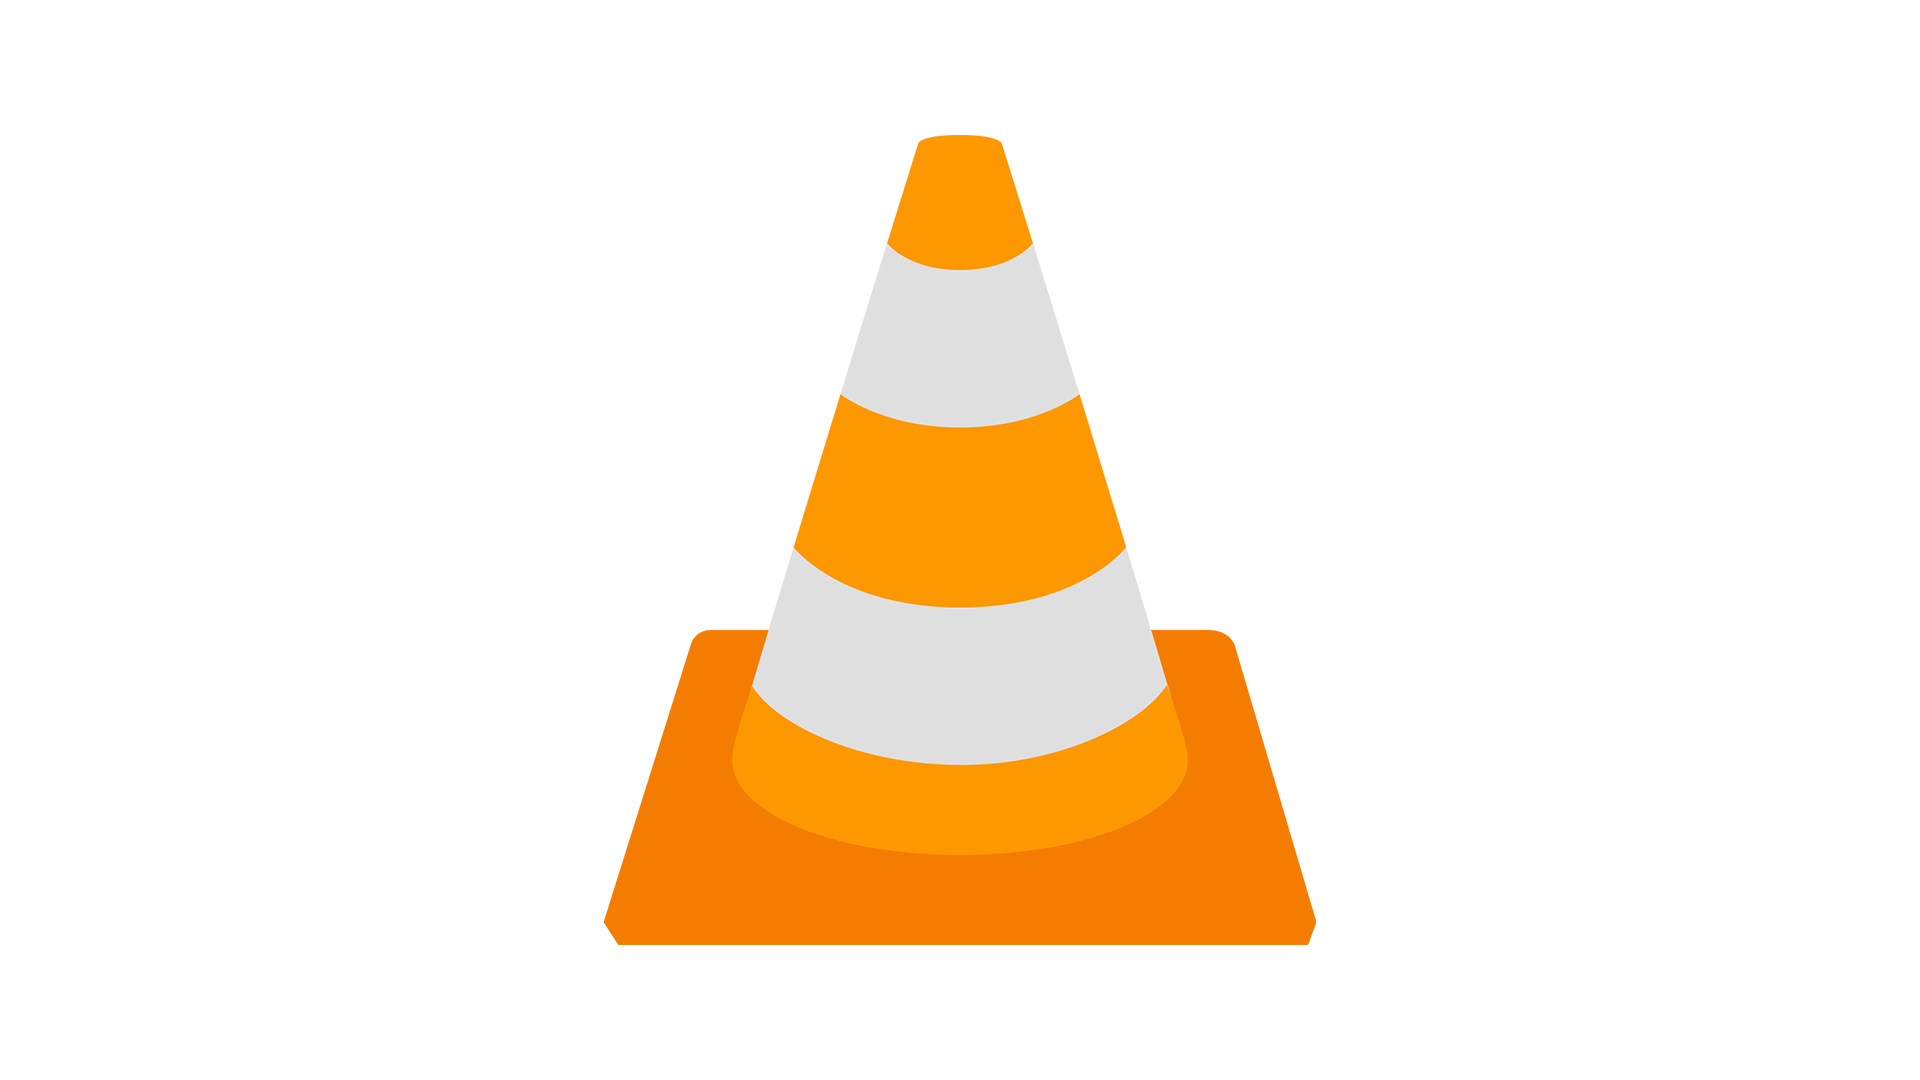 Player, Vlc, Videolan